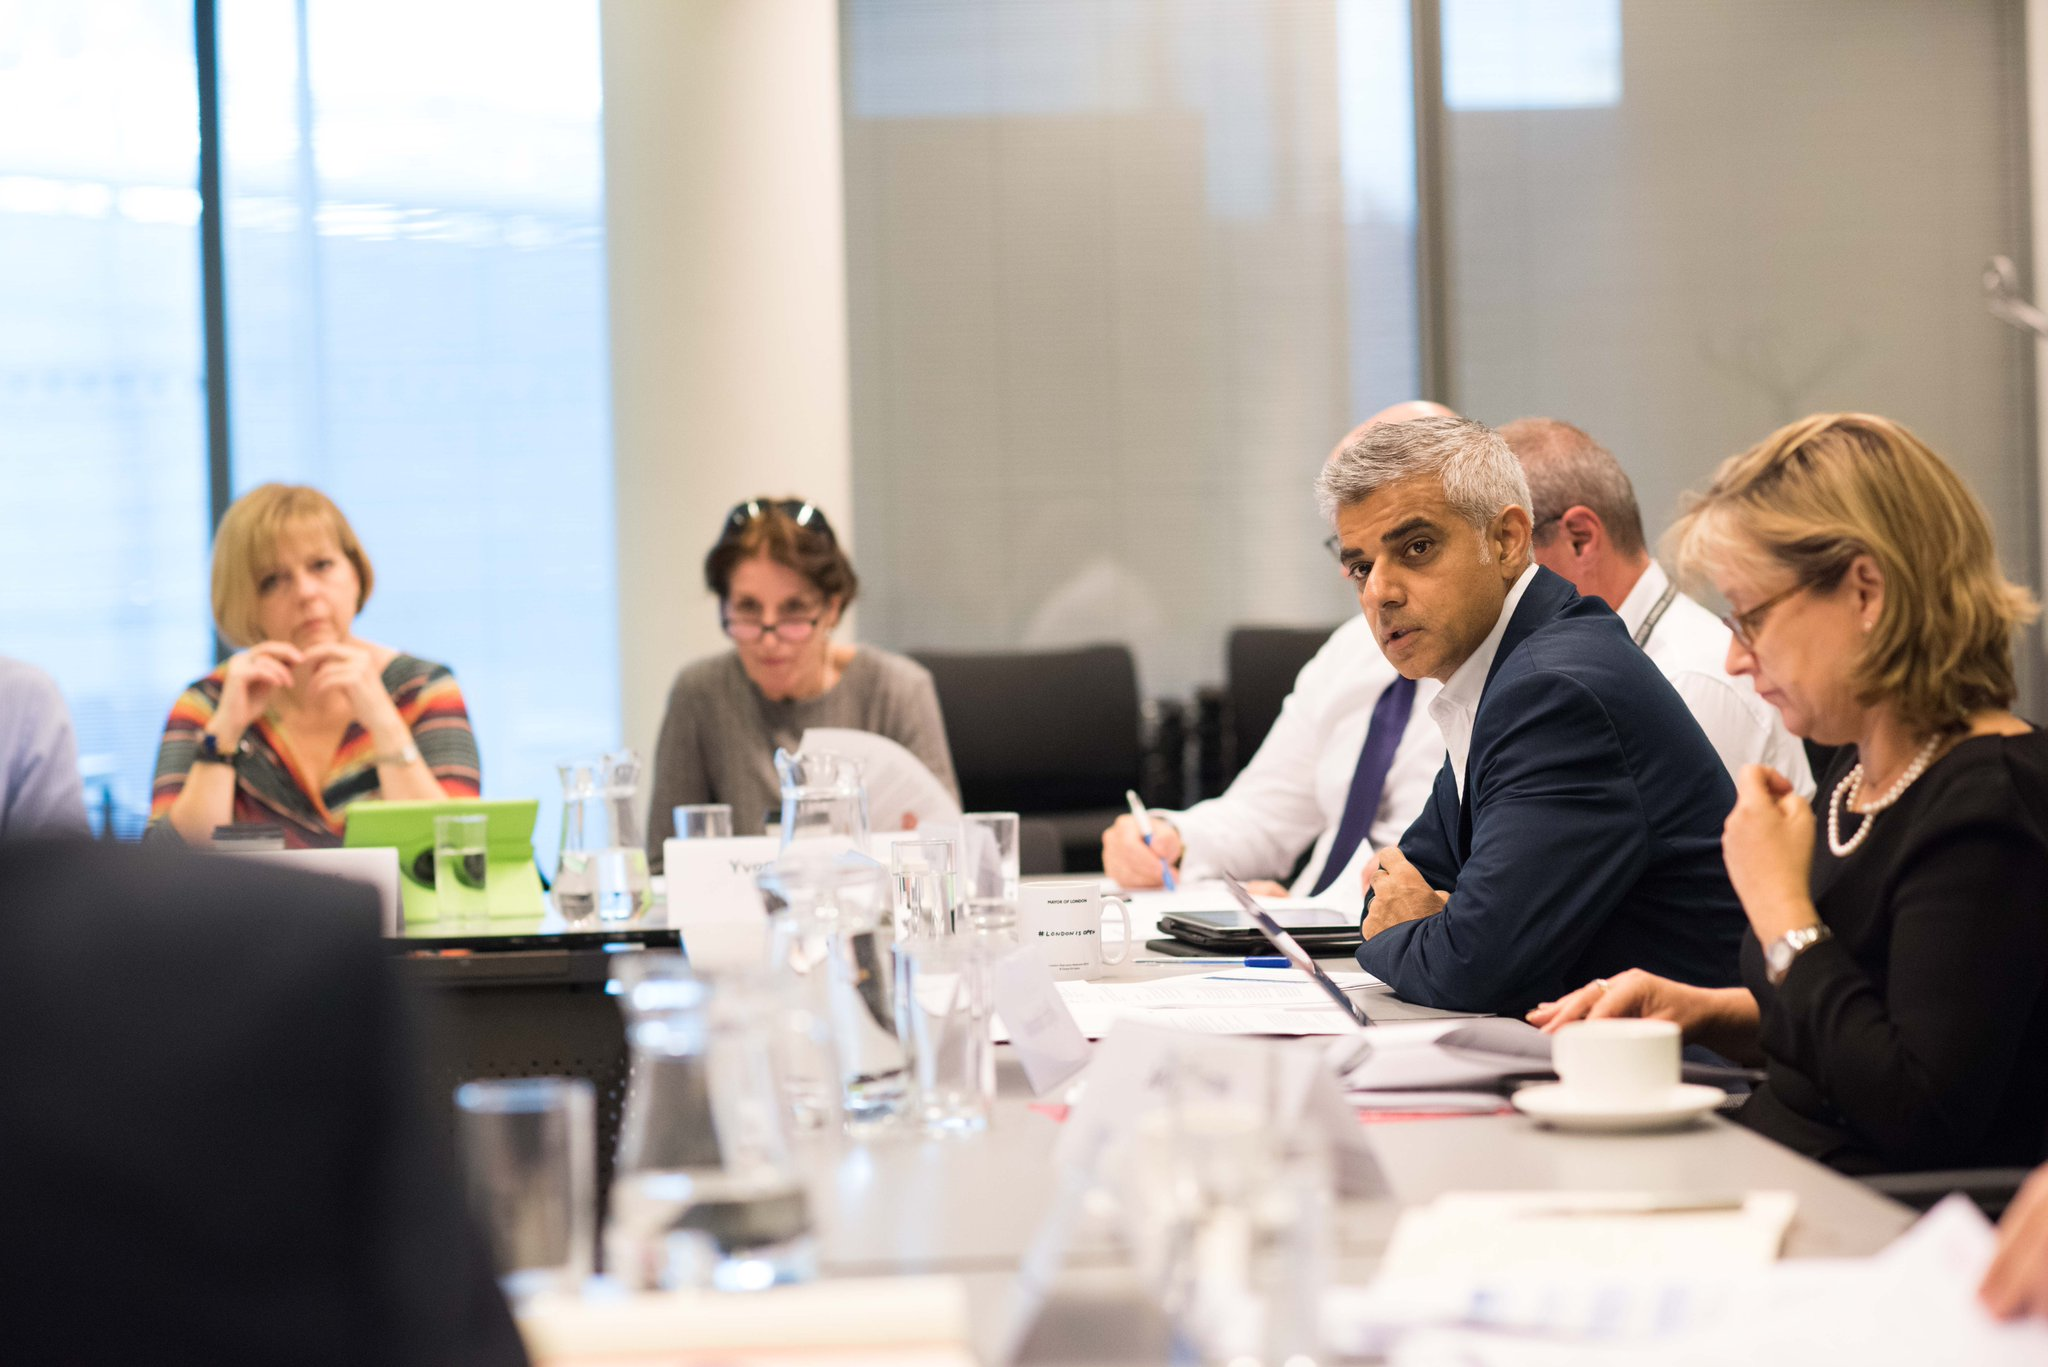 Today I met with the London Health Board – I'm proud of our ongoing work to make London the healthiest global city https://t.co/YxqVLWbppD